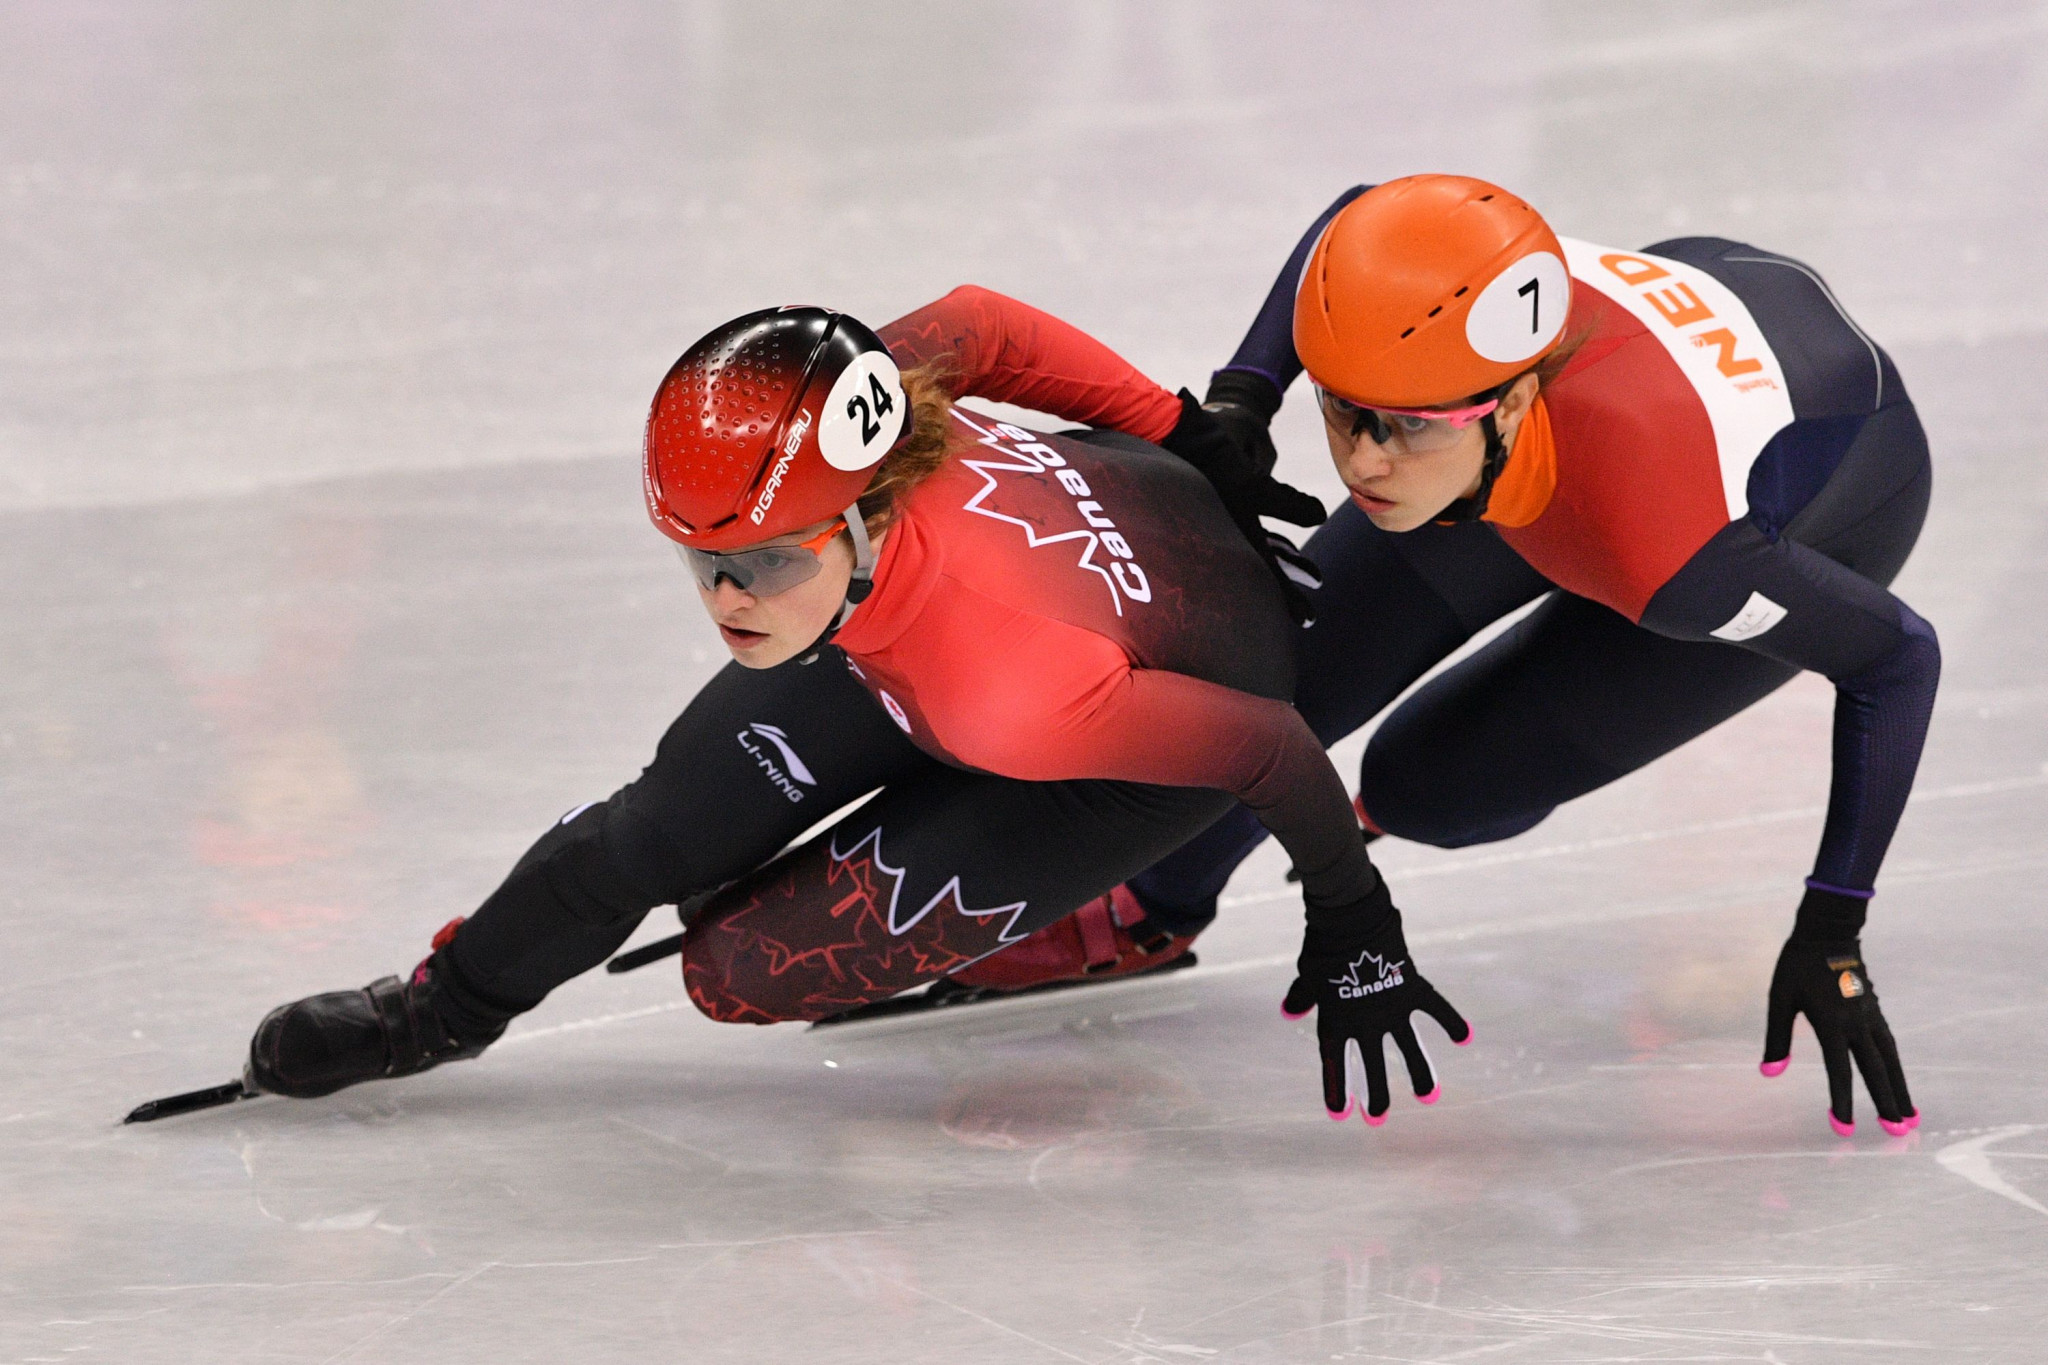 Boutin aims to maintain winning streak at ISU Short Track World Cup in Shanghai